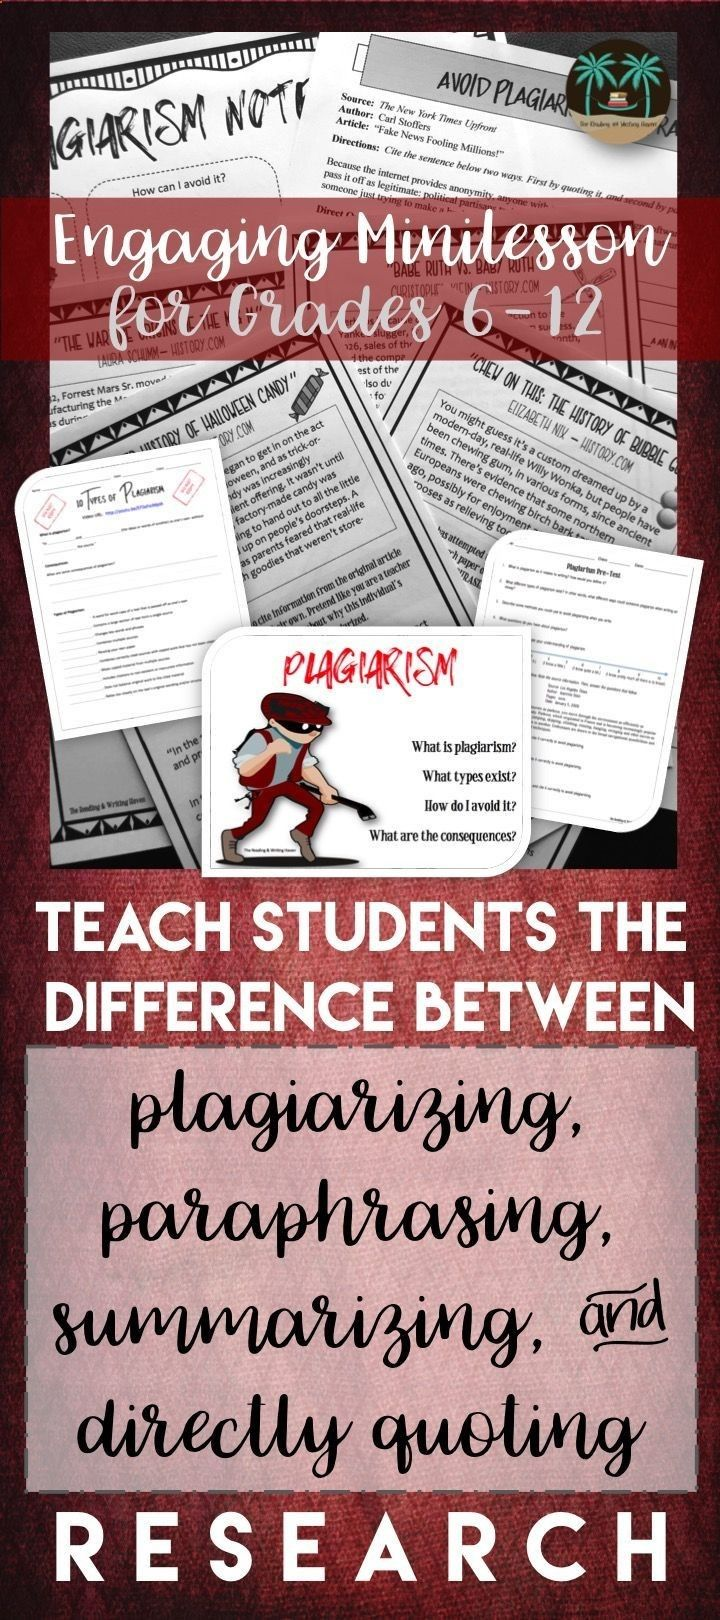 Teach Student The Basic Of Plagiarizing Summarizing Paraphrasing And Directly Quoting Research With Thi Conci Plagiarism Lesson Teaching Writing In Text Citation Mla